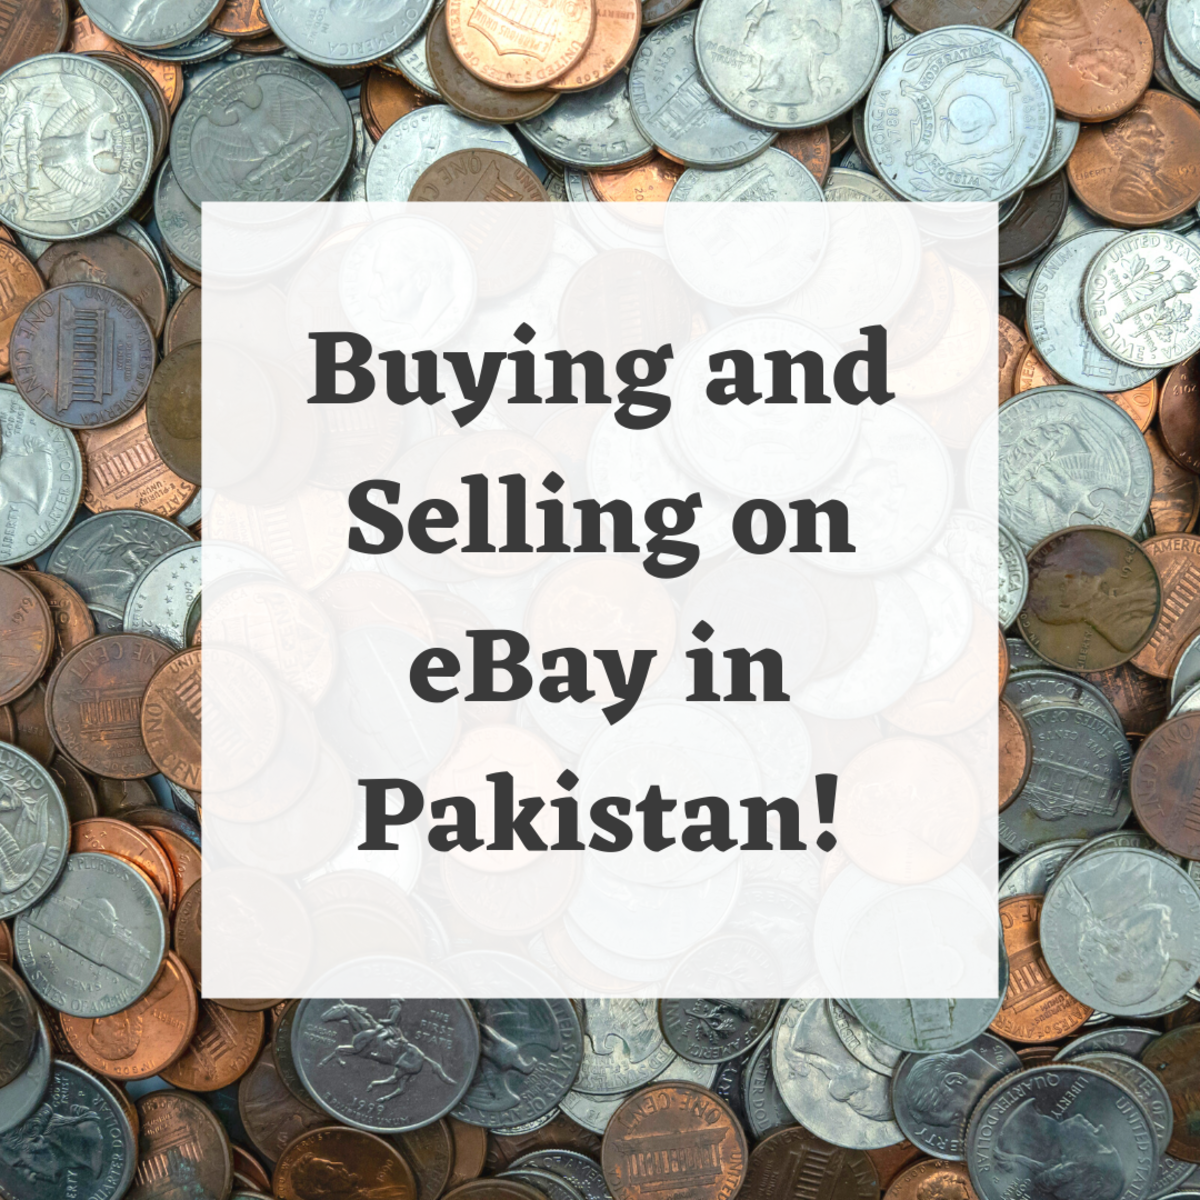 Buying and Selling on eBay in Pakistan